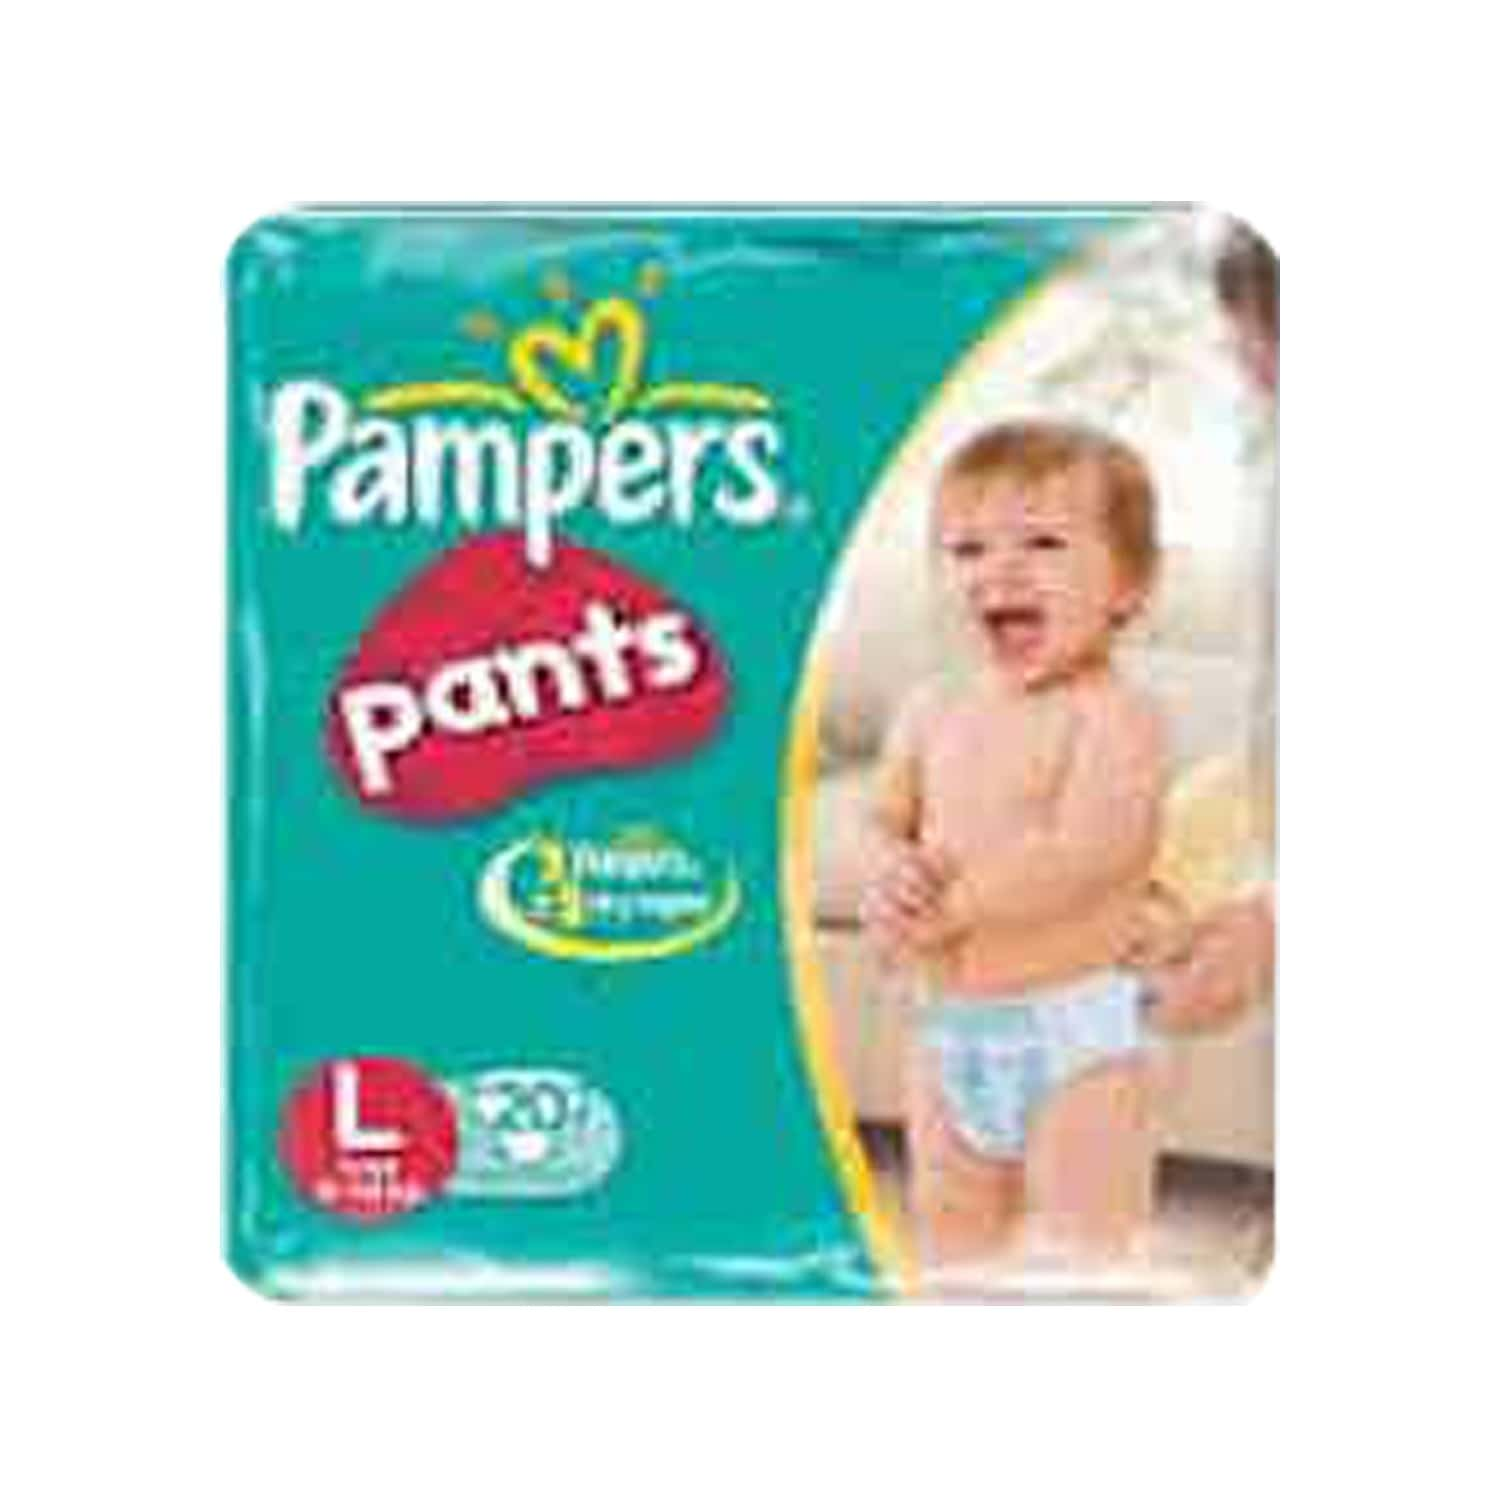 Pampers Diaper Pants Large Size 20 Pieces